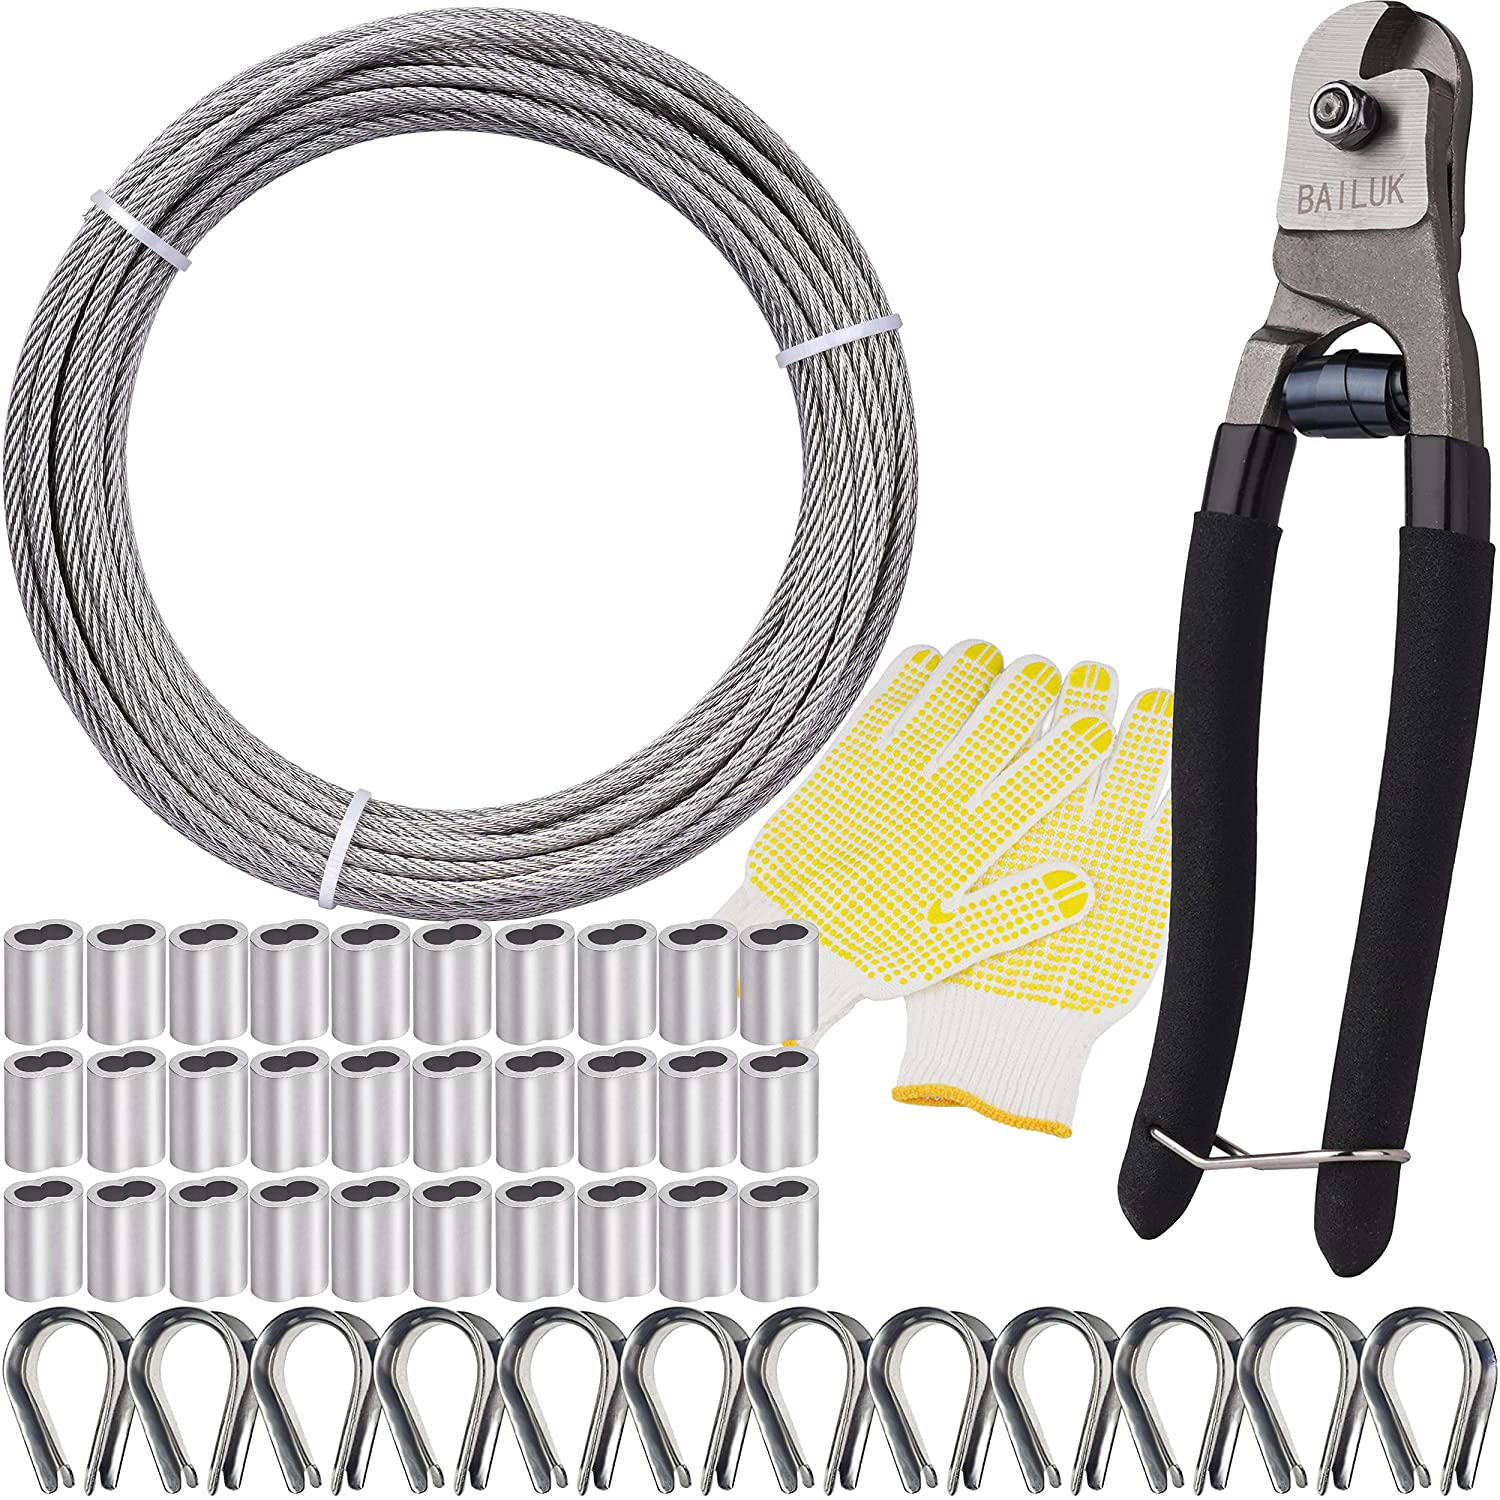 T316 Stainless Steel Max 72% OFF Cable with Cutter Aircraft Rope Wire shopping